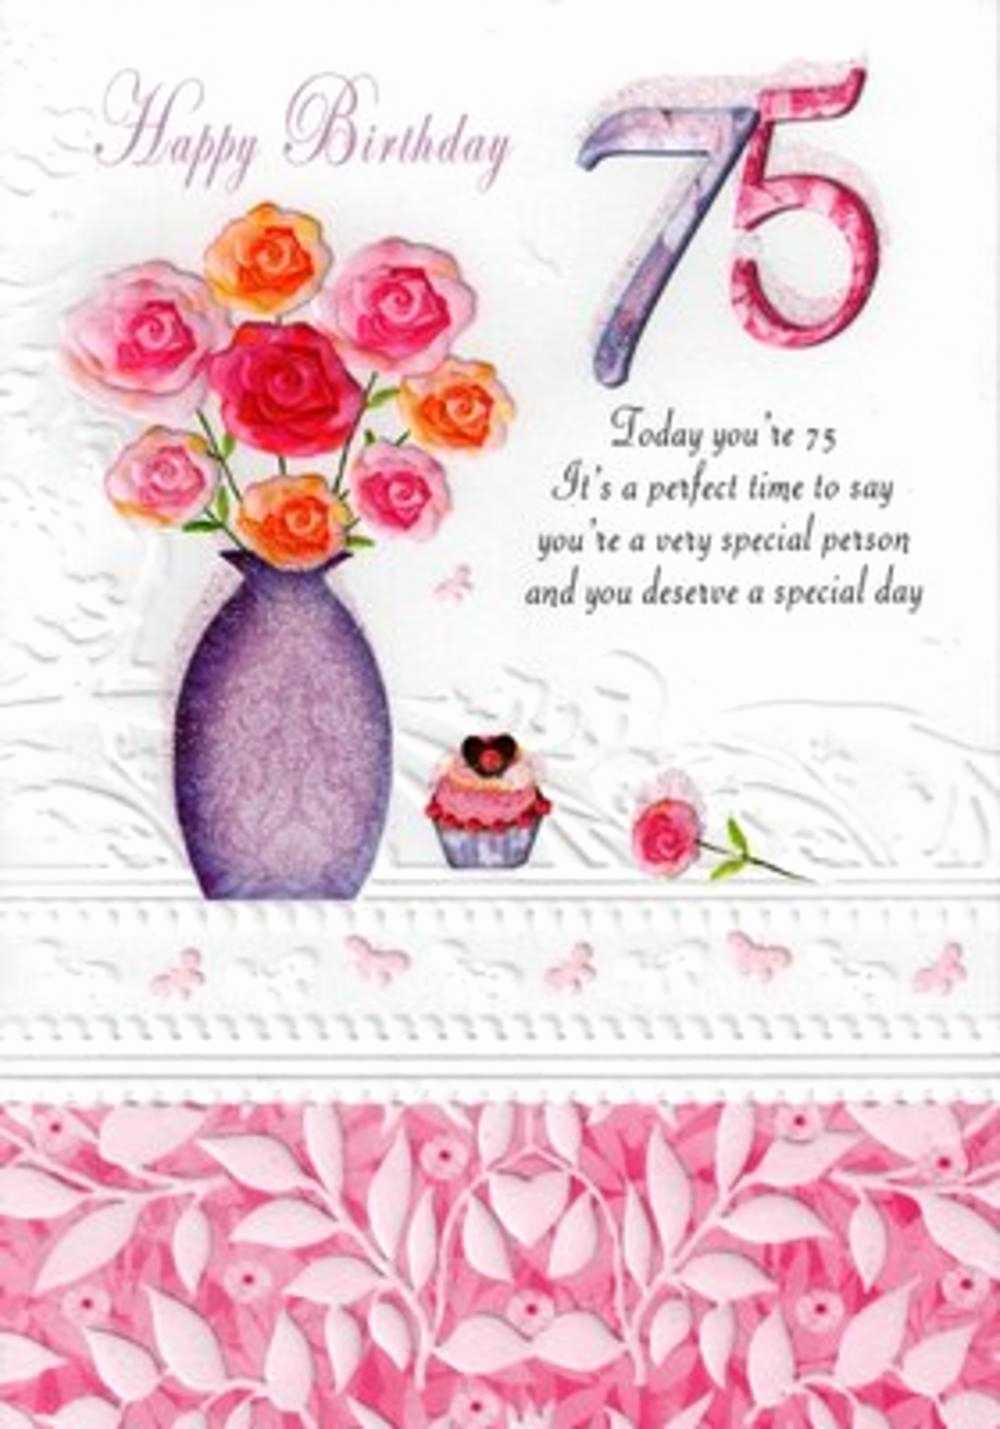 75th birthday greeting cards ; 75th-birthday-wishes-best-of-75th-birthday-card-verses-related-keywords-75th-birthday-of-75th-birthday-wishes